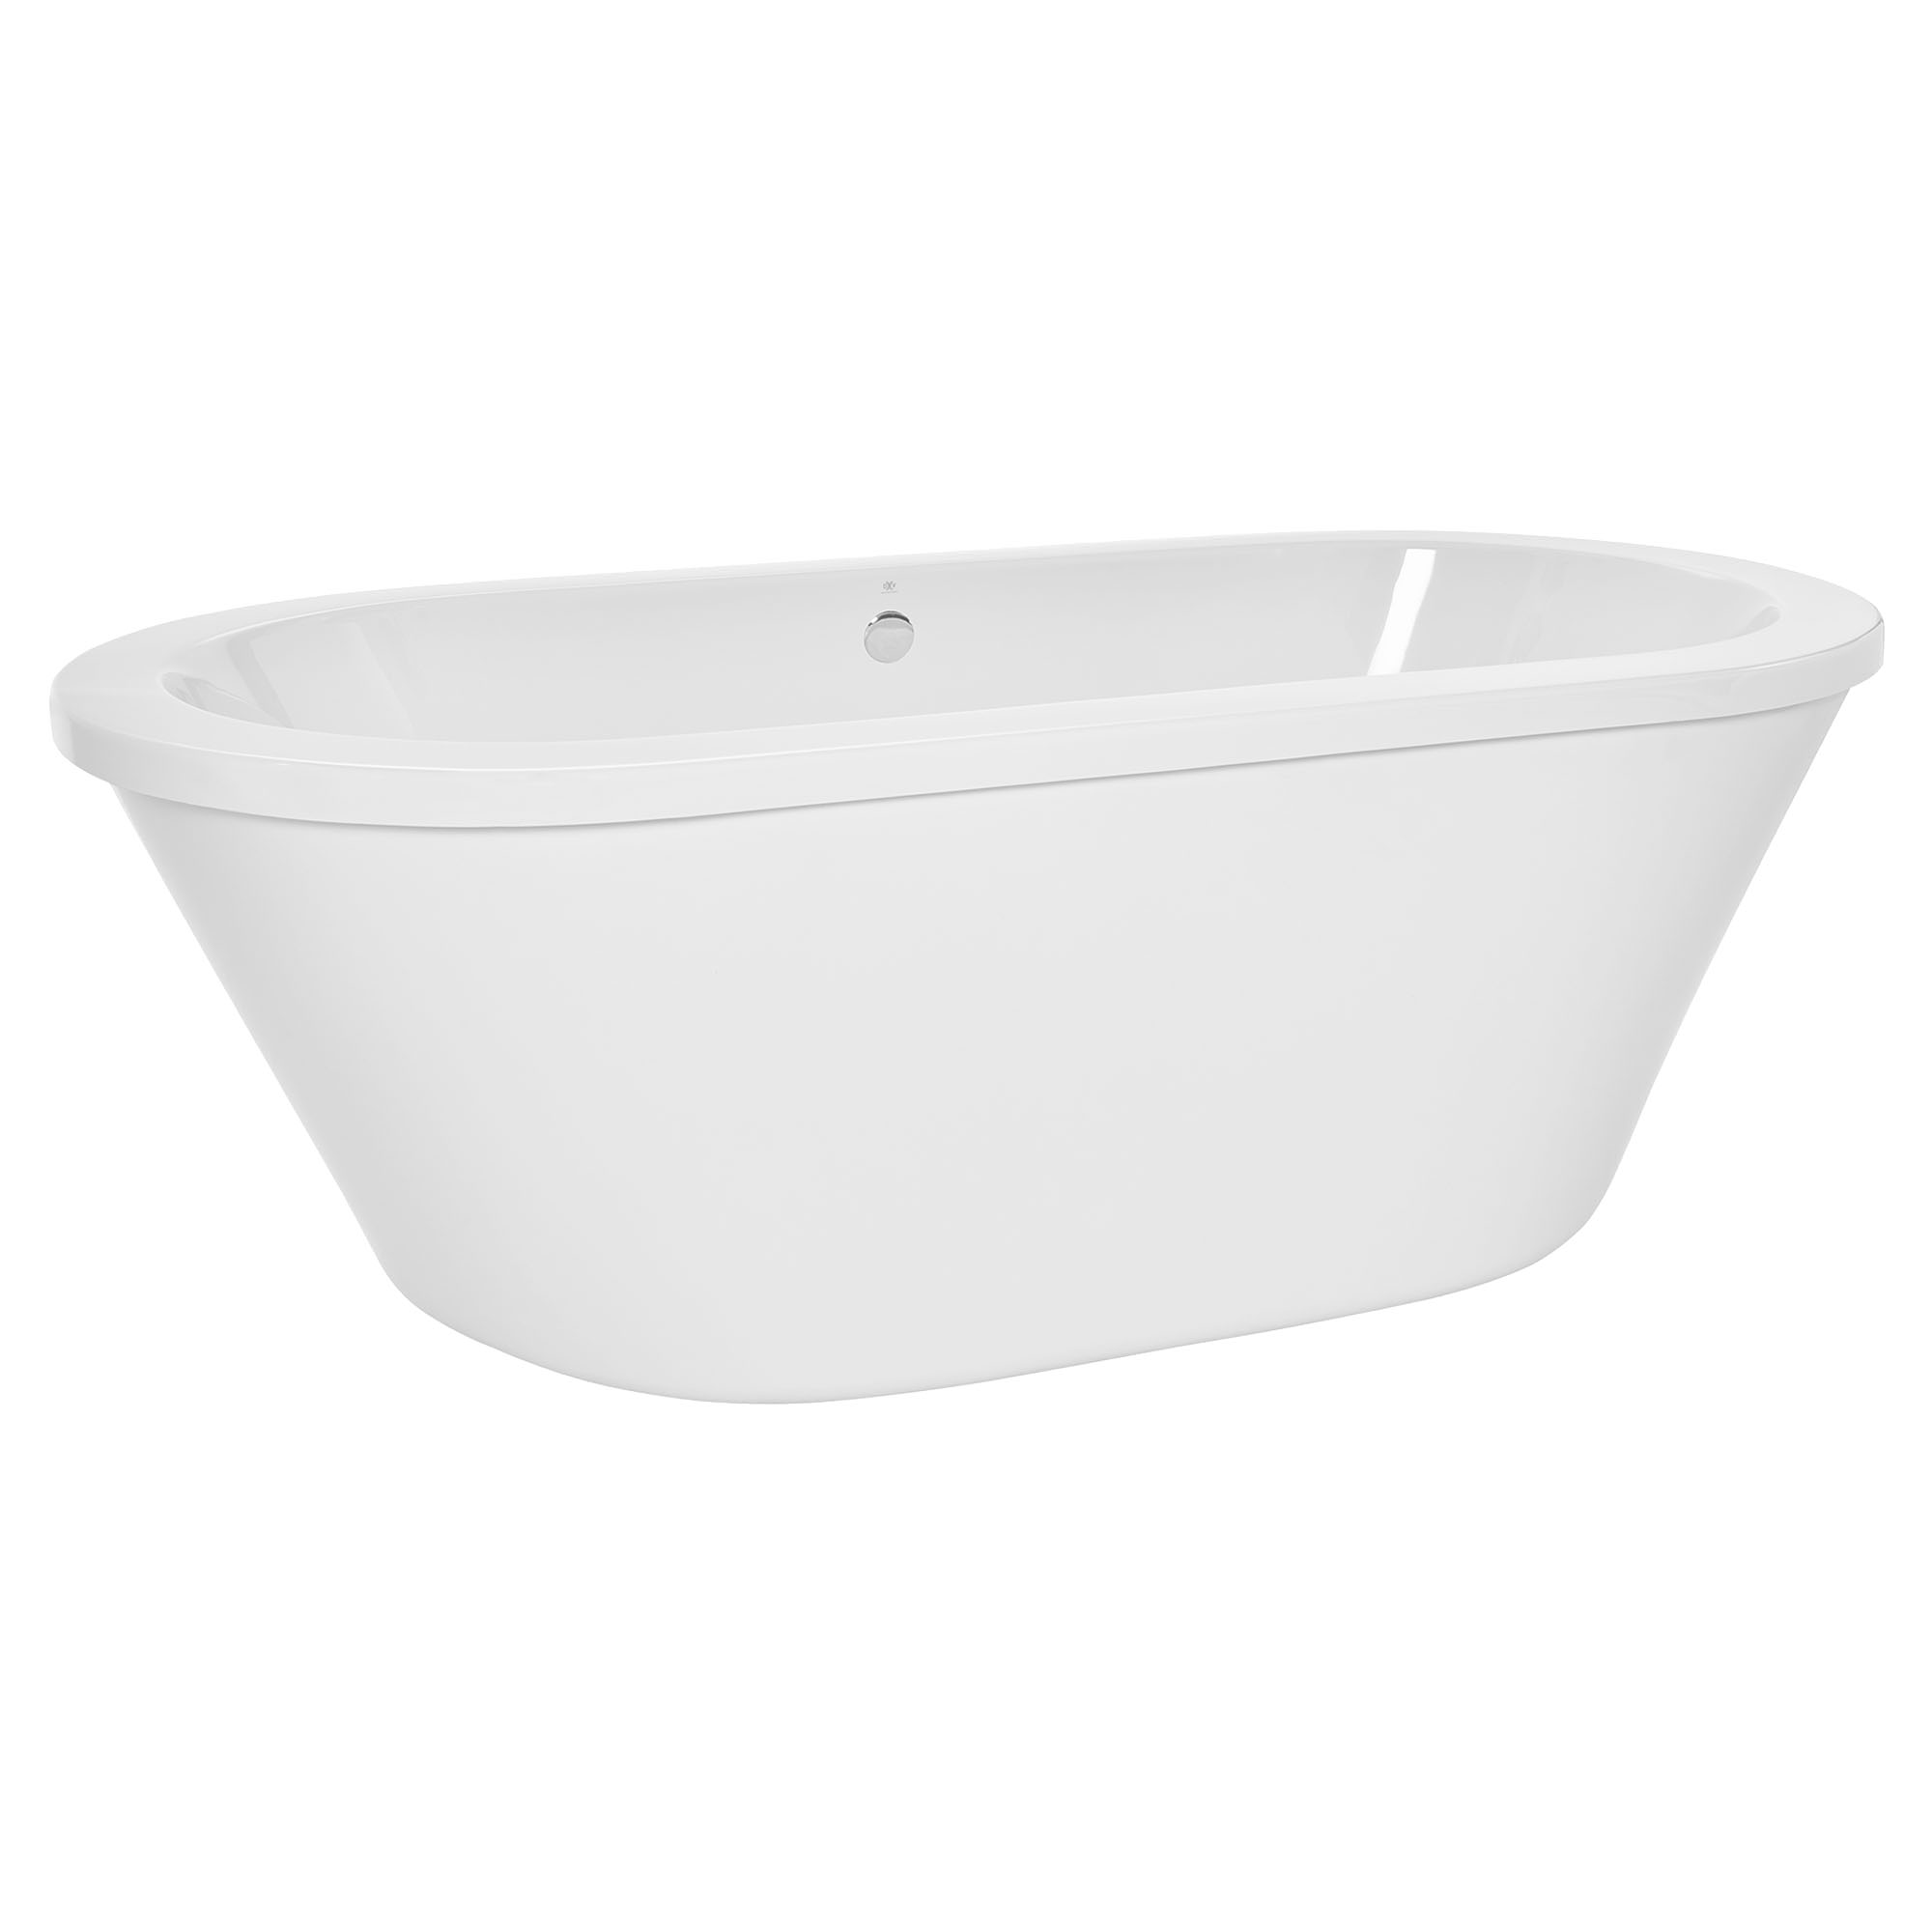 pelion bathtubs l freestanding bathtub ideas tub standard american inch acrylic